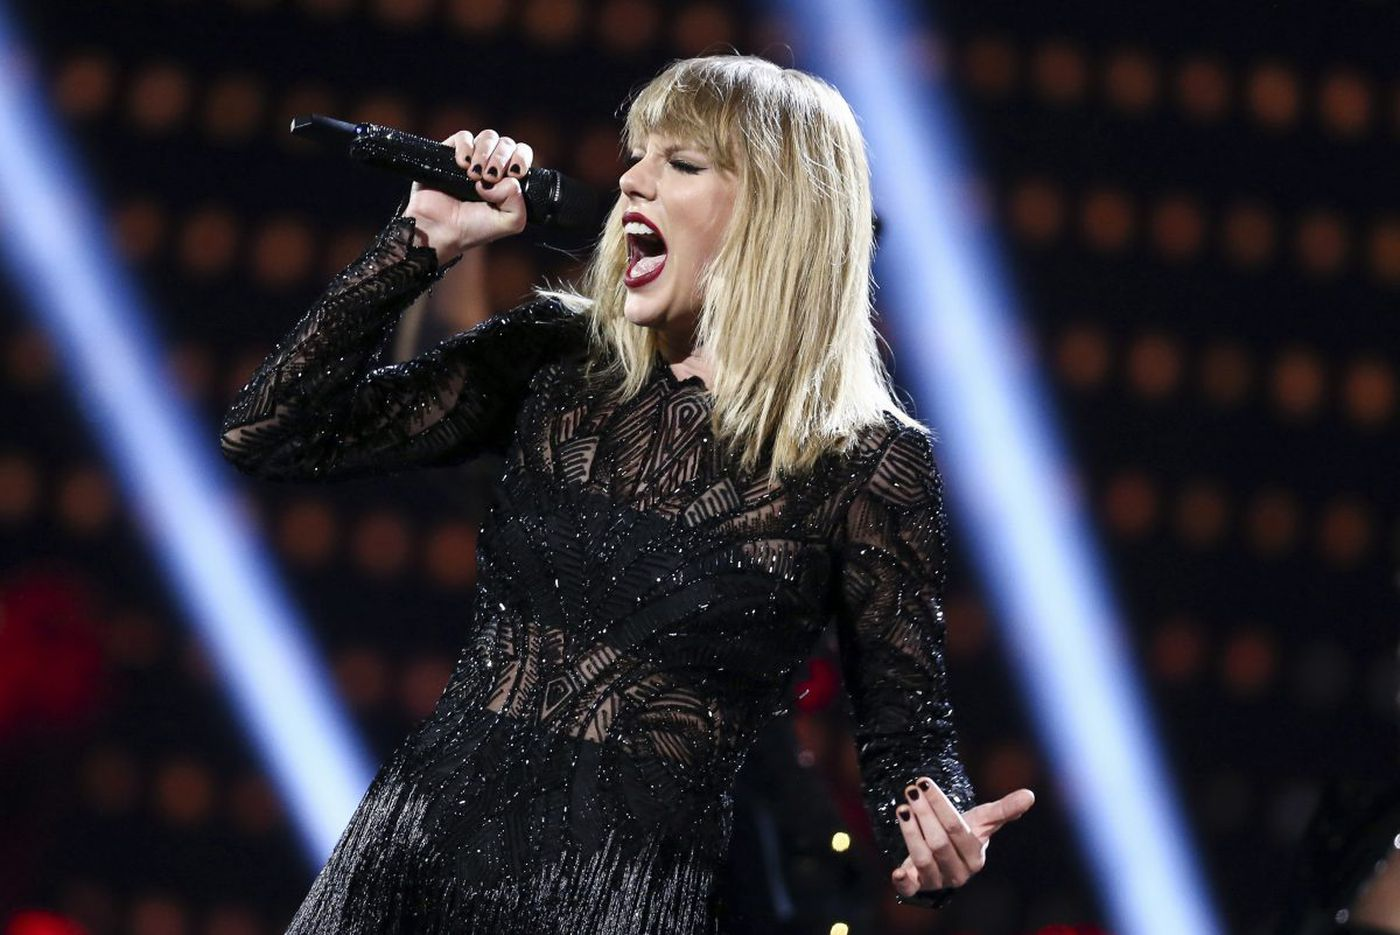 ACLU slams Taylor Swift for threatening to sue blogger who linked her to white supremacists